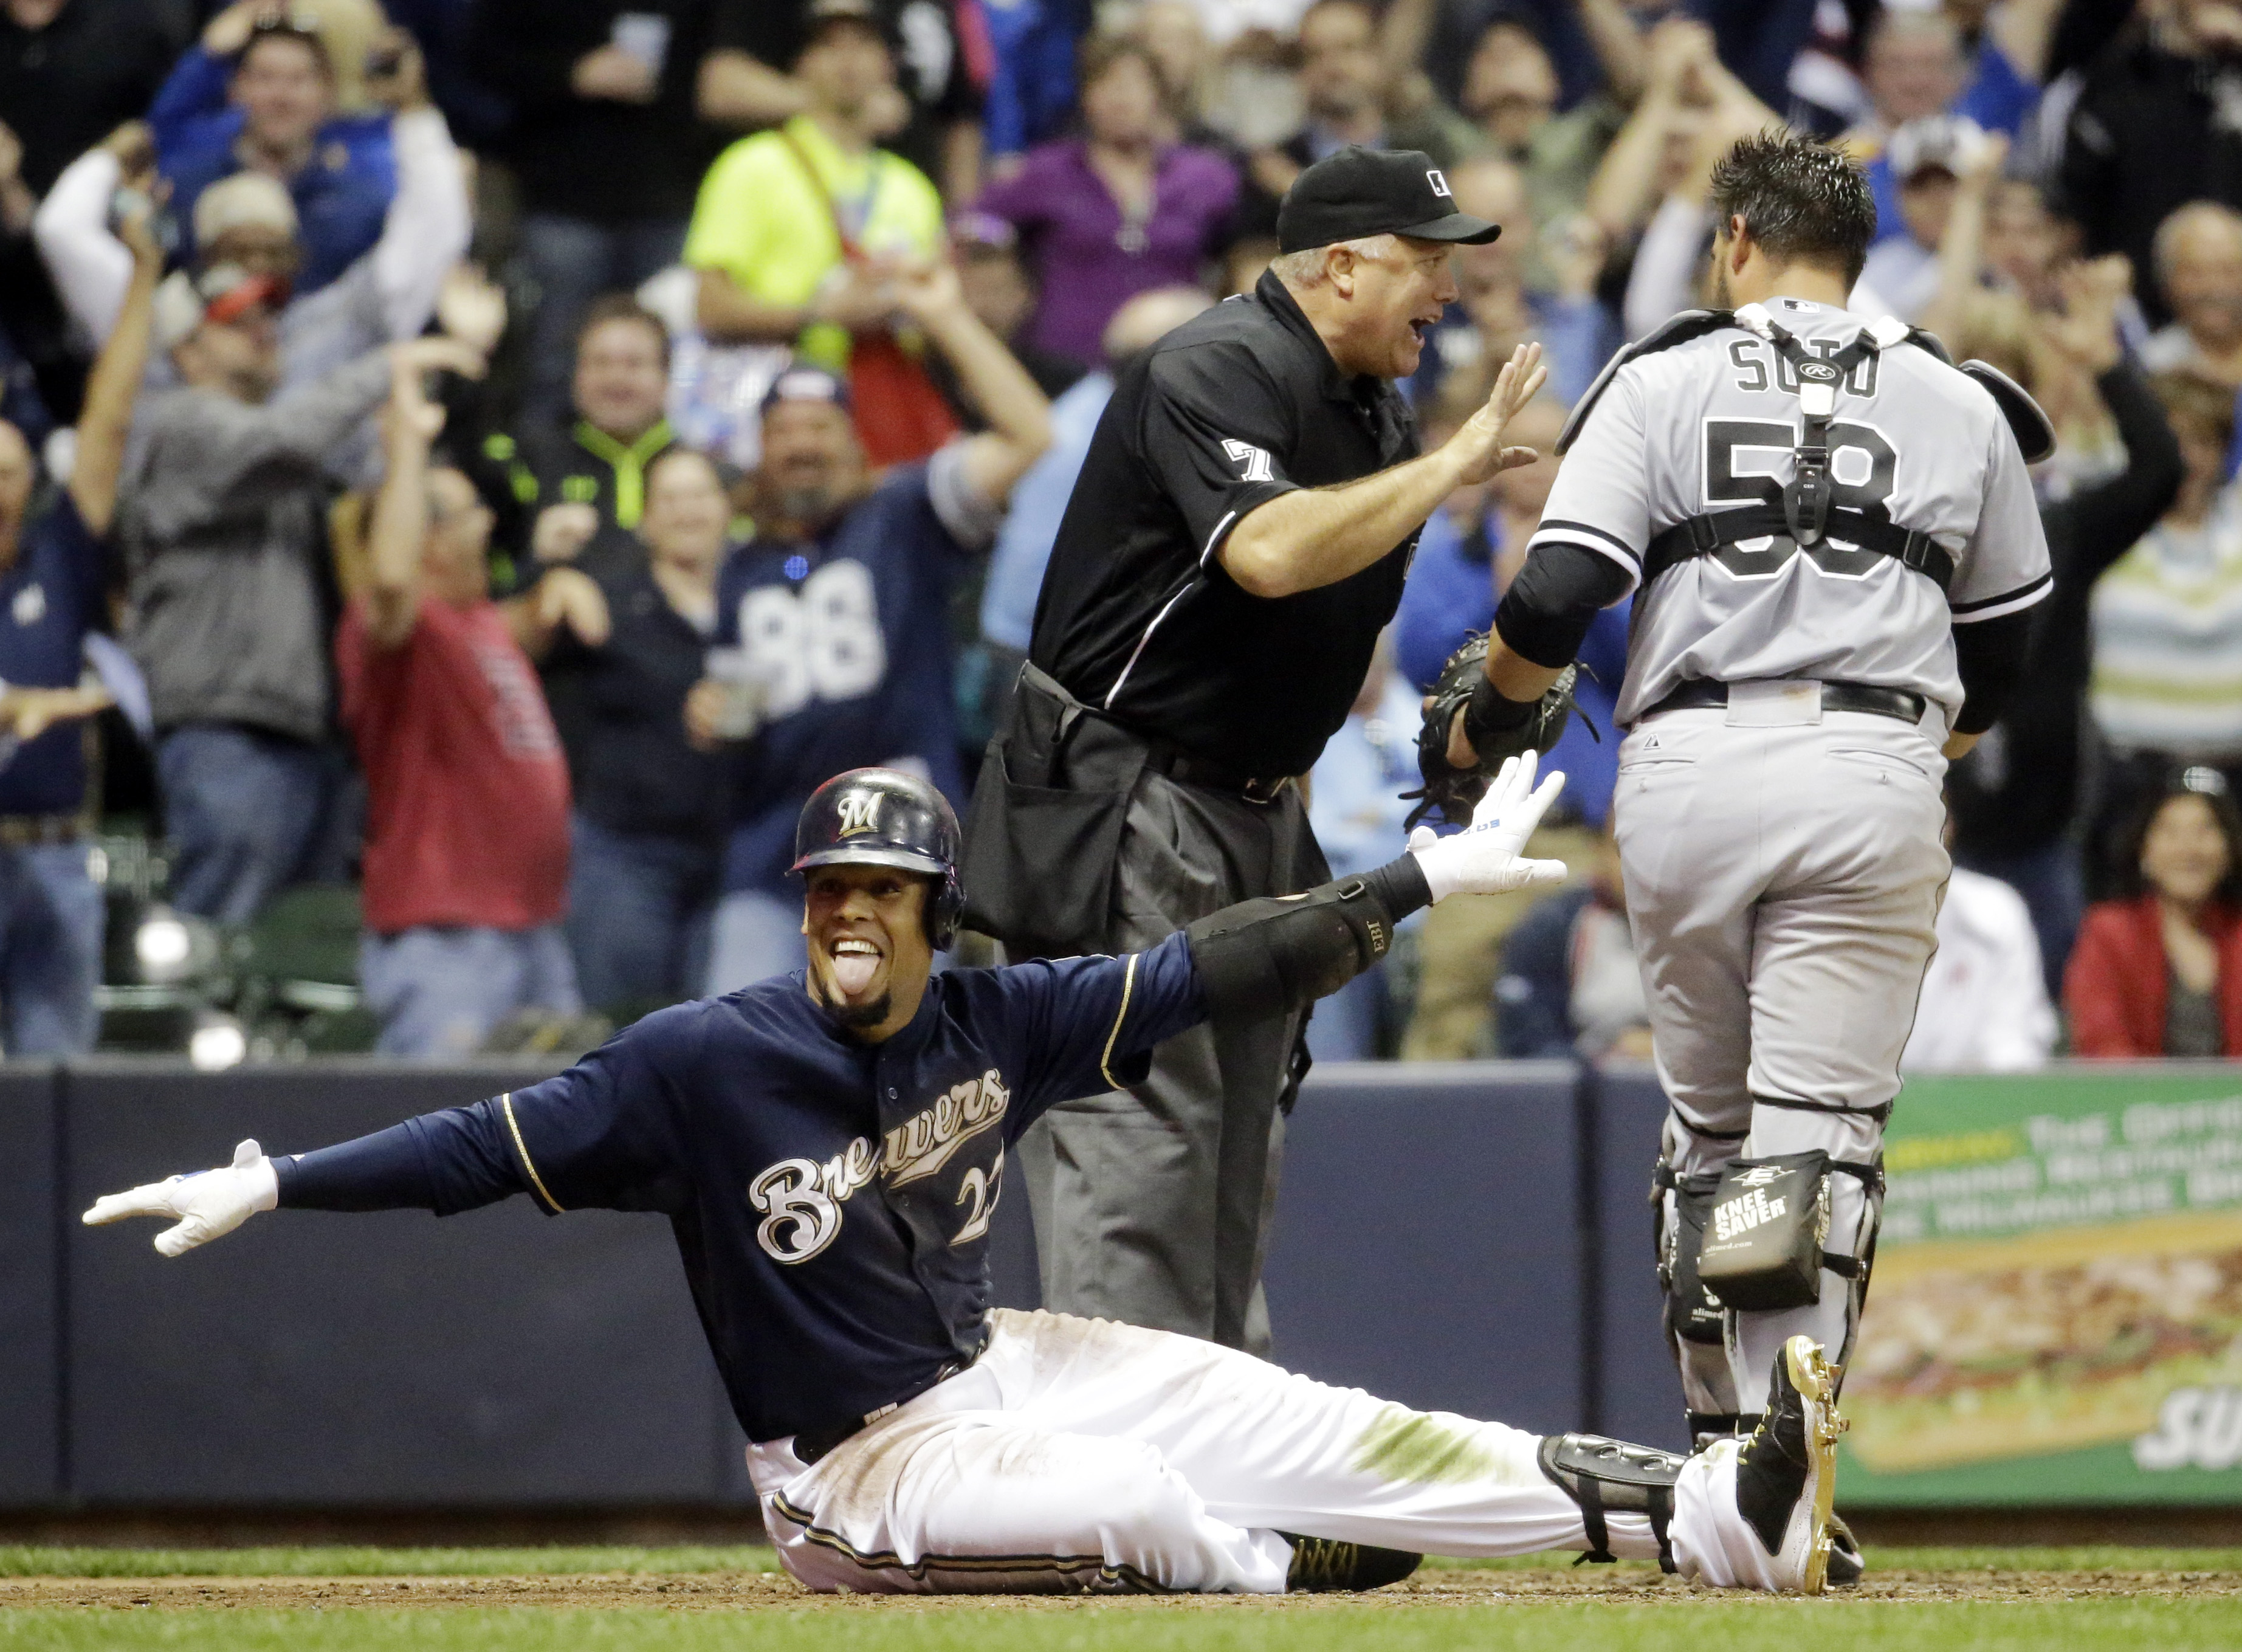 Chicago White Sox catcher Geovany Soto argues as Milwaukee Brewers' Carlos Gomez reacts after being called safe at home during the fifth inning of a baseball game Monday, May 11, 2015, in Milwaukee. Gomez was safe after hitting a triple and a throwing err